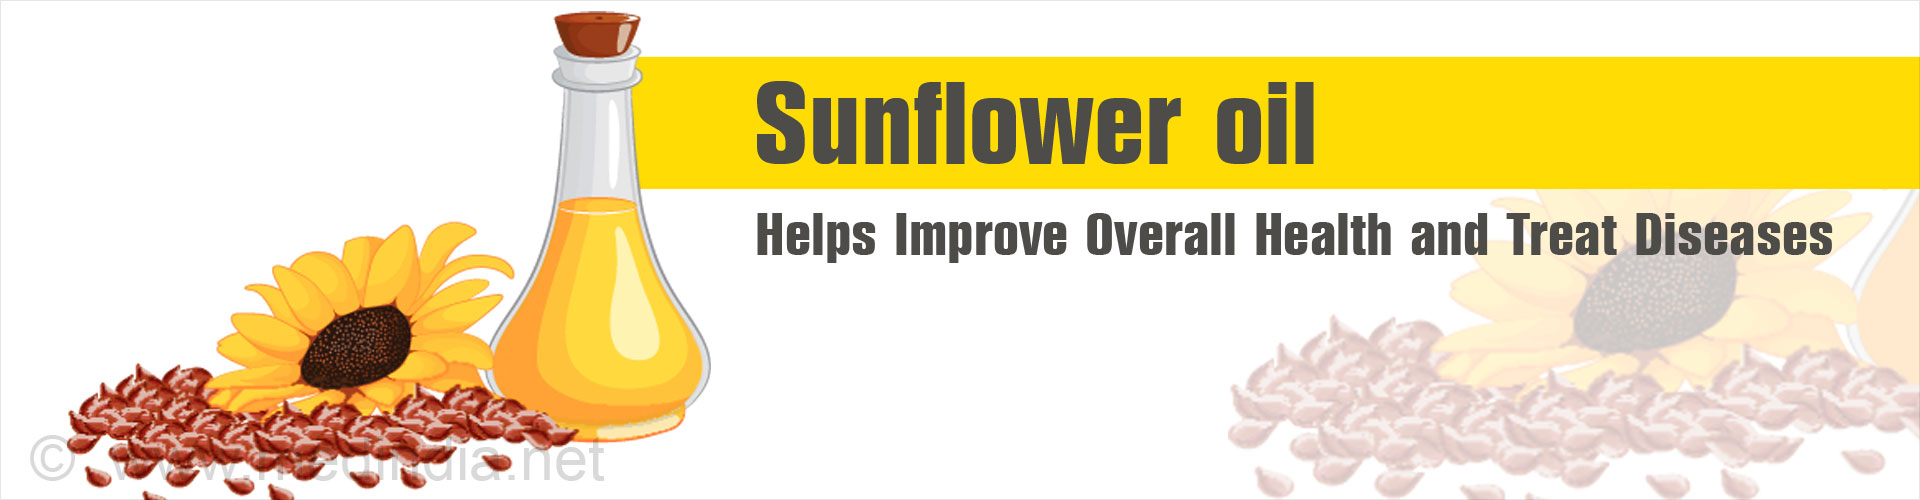 Top 10 Health Benefits of Sunflower Oil